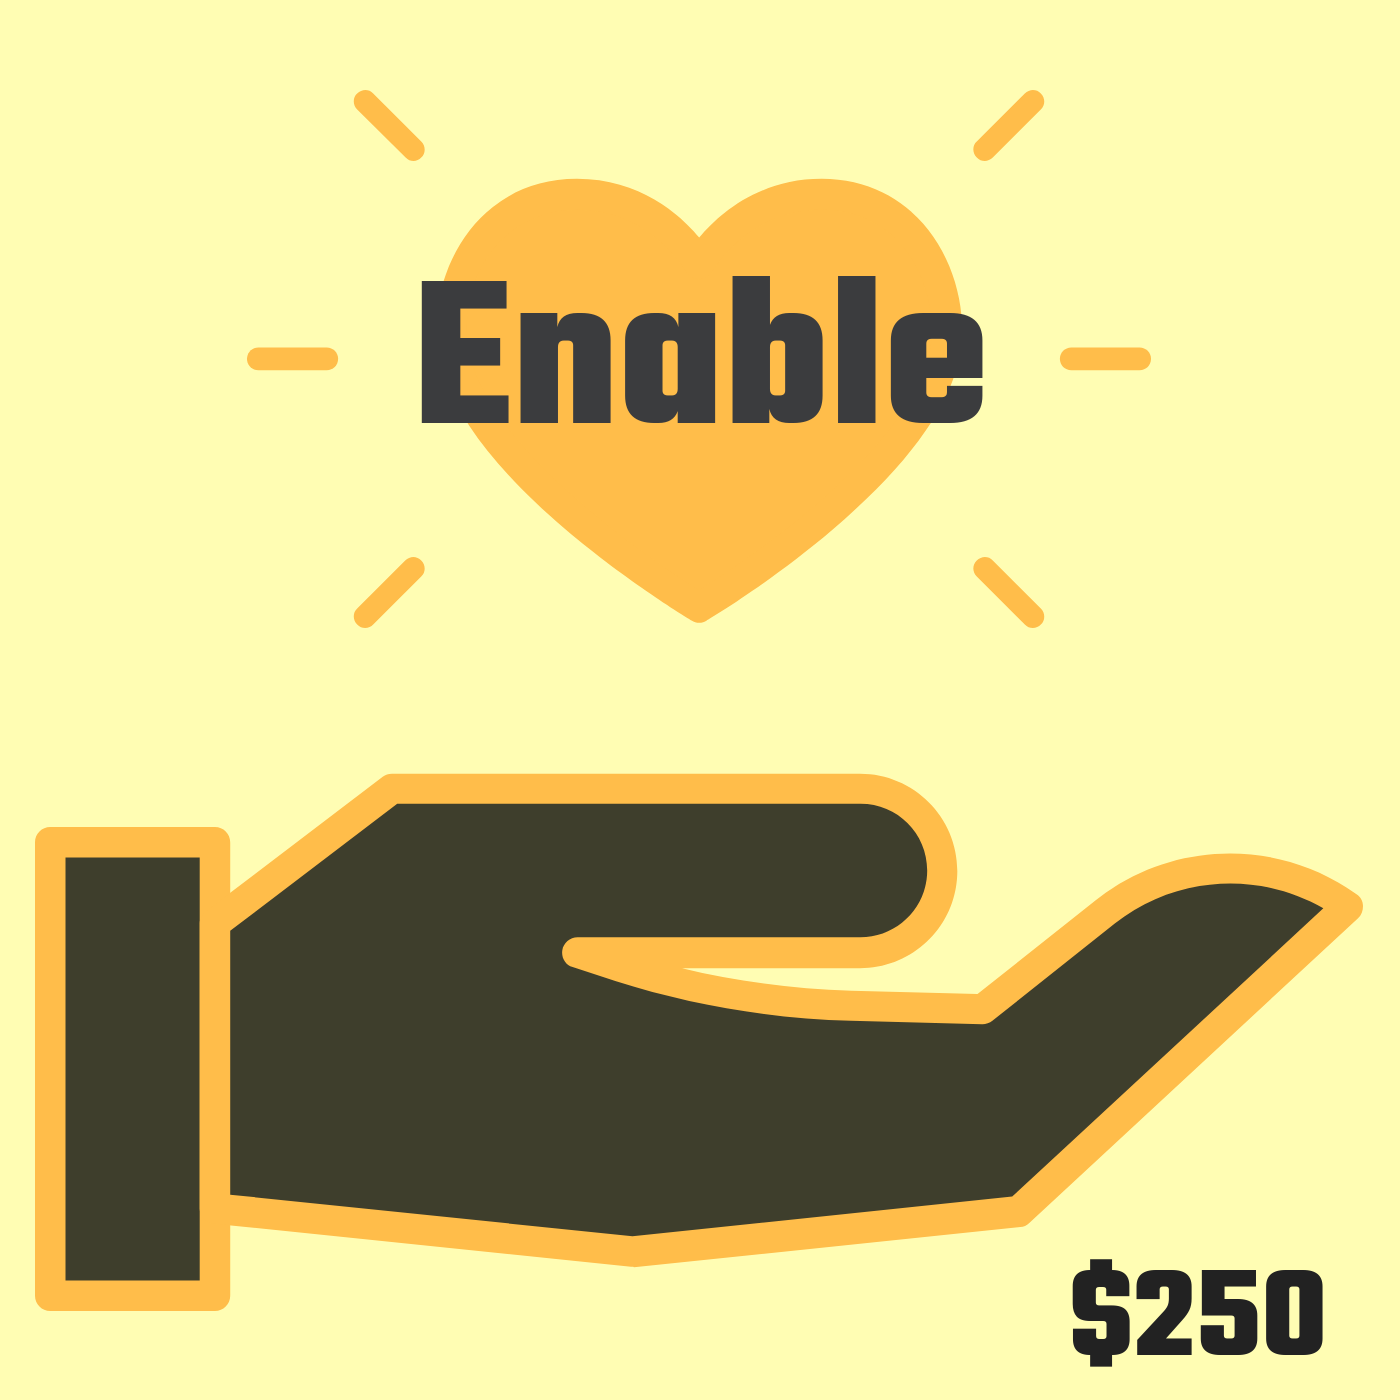 Enable ($250+) - You believe in us and it means so much that you're actually helping us bring 20s and Change to life! We want to thank you and celebrate you. Benefits for Enable Patrons include:- recognition in our film credits, on our landing page and in our digital content compilation- a thank you postcard and video just for you from San Francisco- a photo of us in San Francisco with a sign holding up your name- a 20s and Change t-shirt- opportunity to be featured in the Let's Care podcast before the film is released and subsequent mention in a story written for Thrive Global